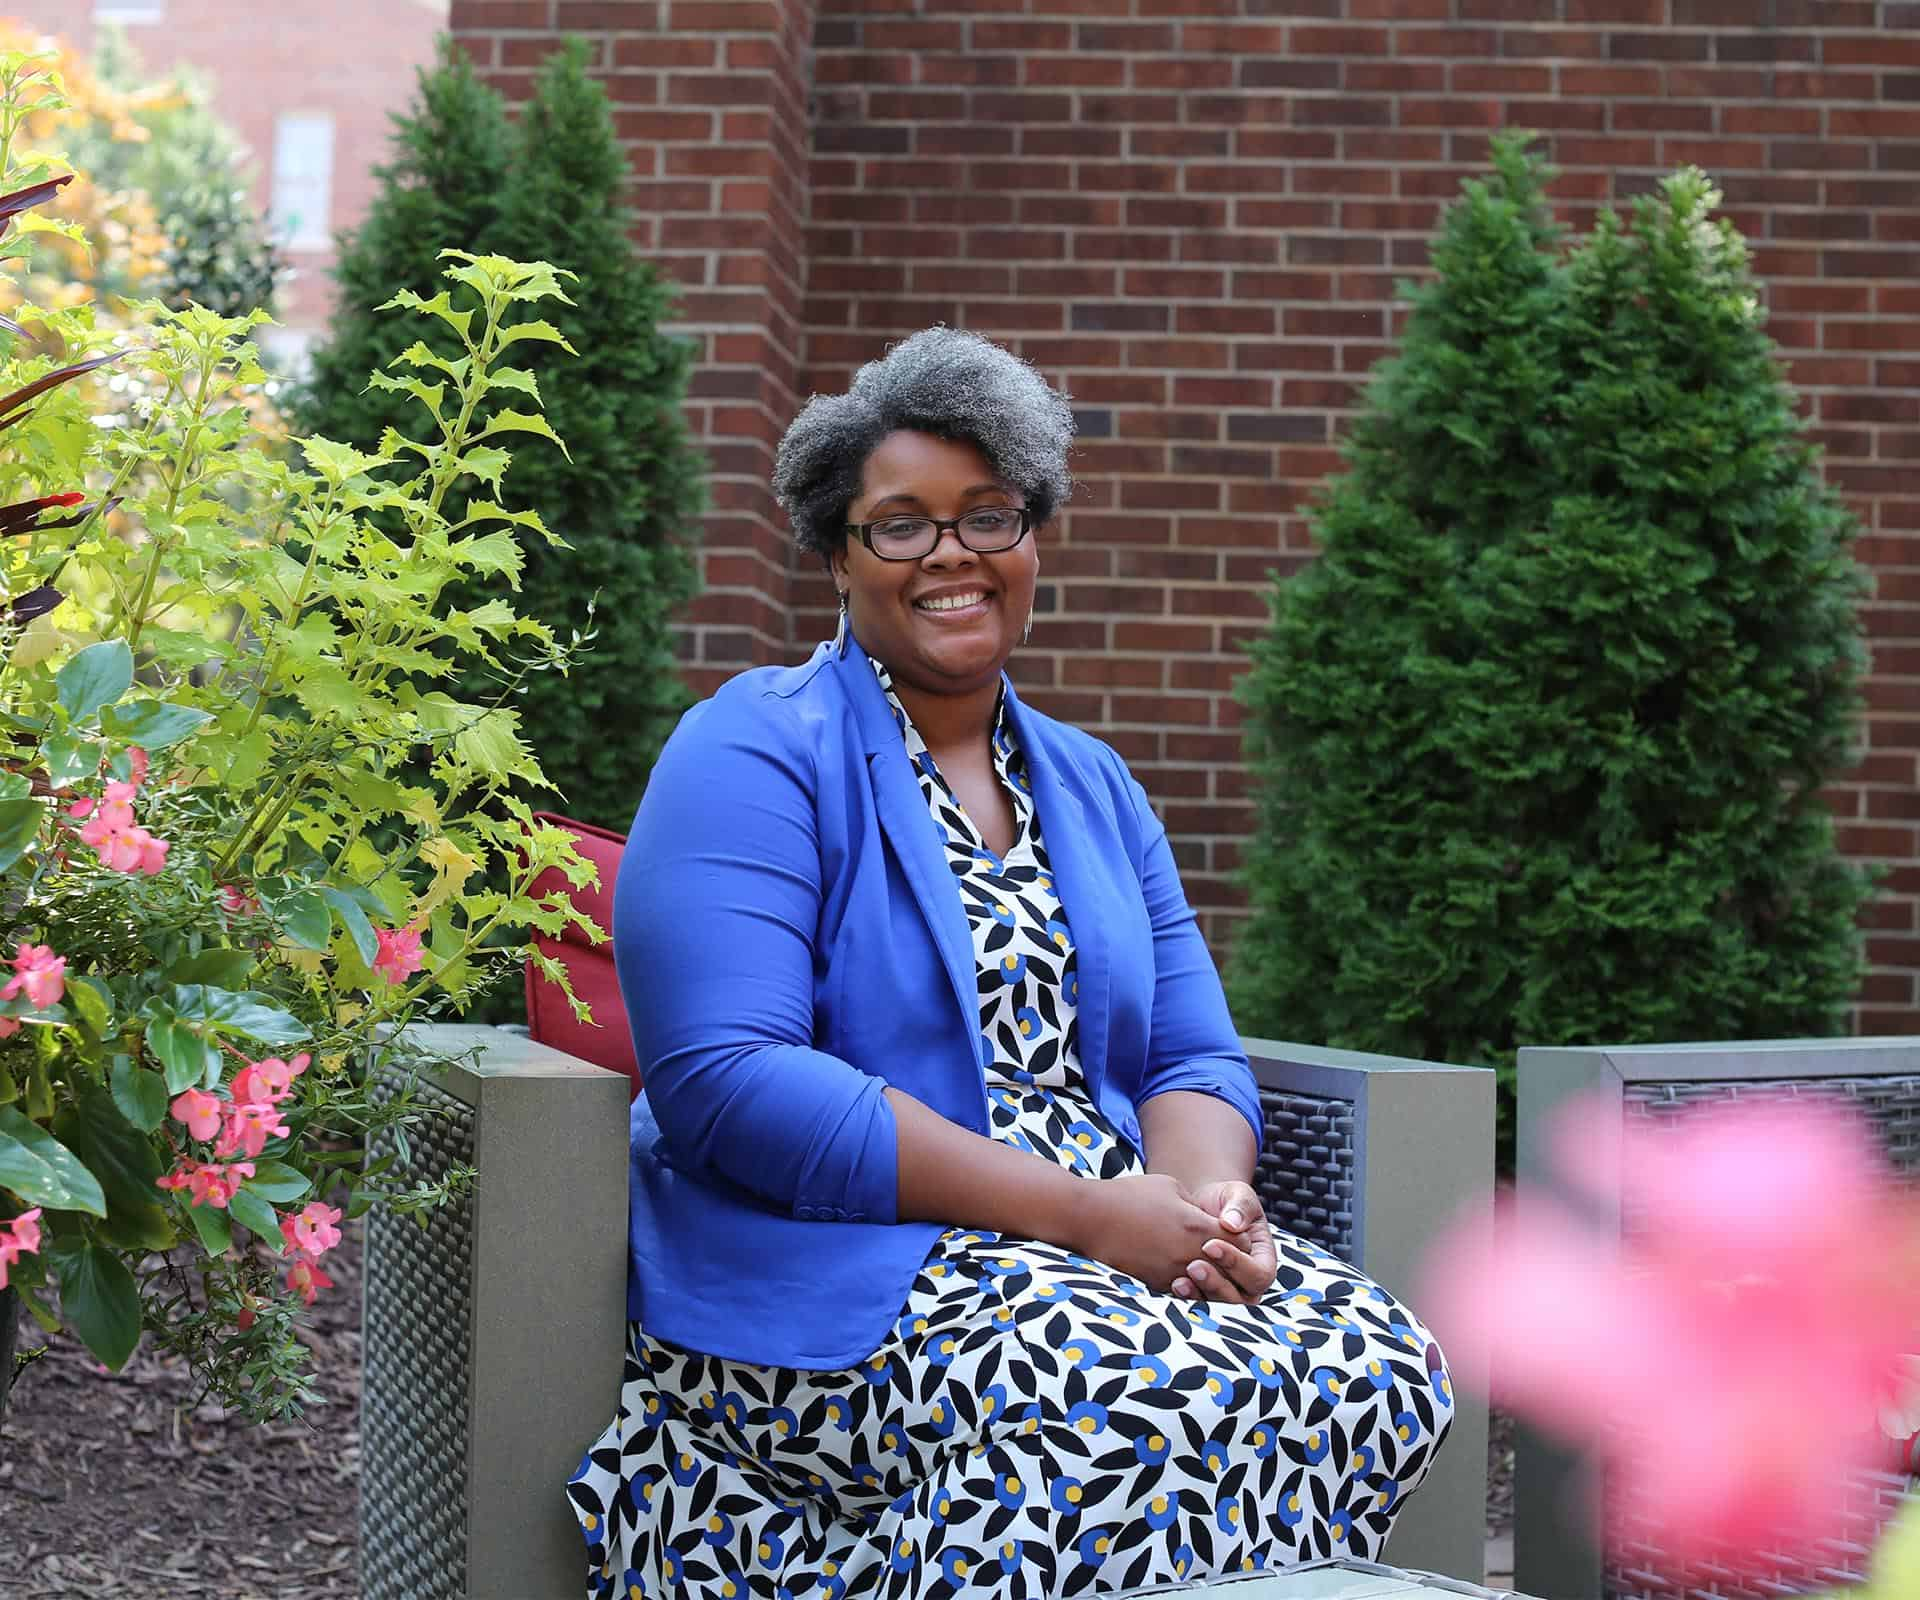 WPU Faculty member, Janelle Jennings-Alexander